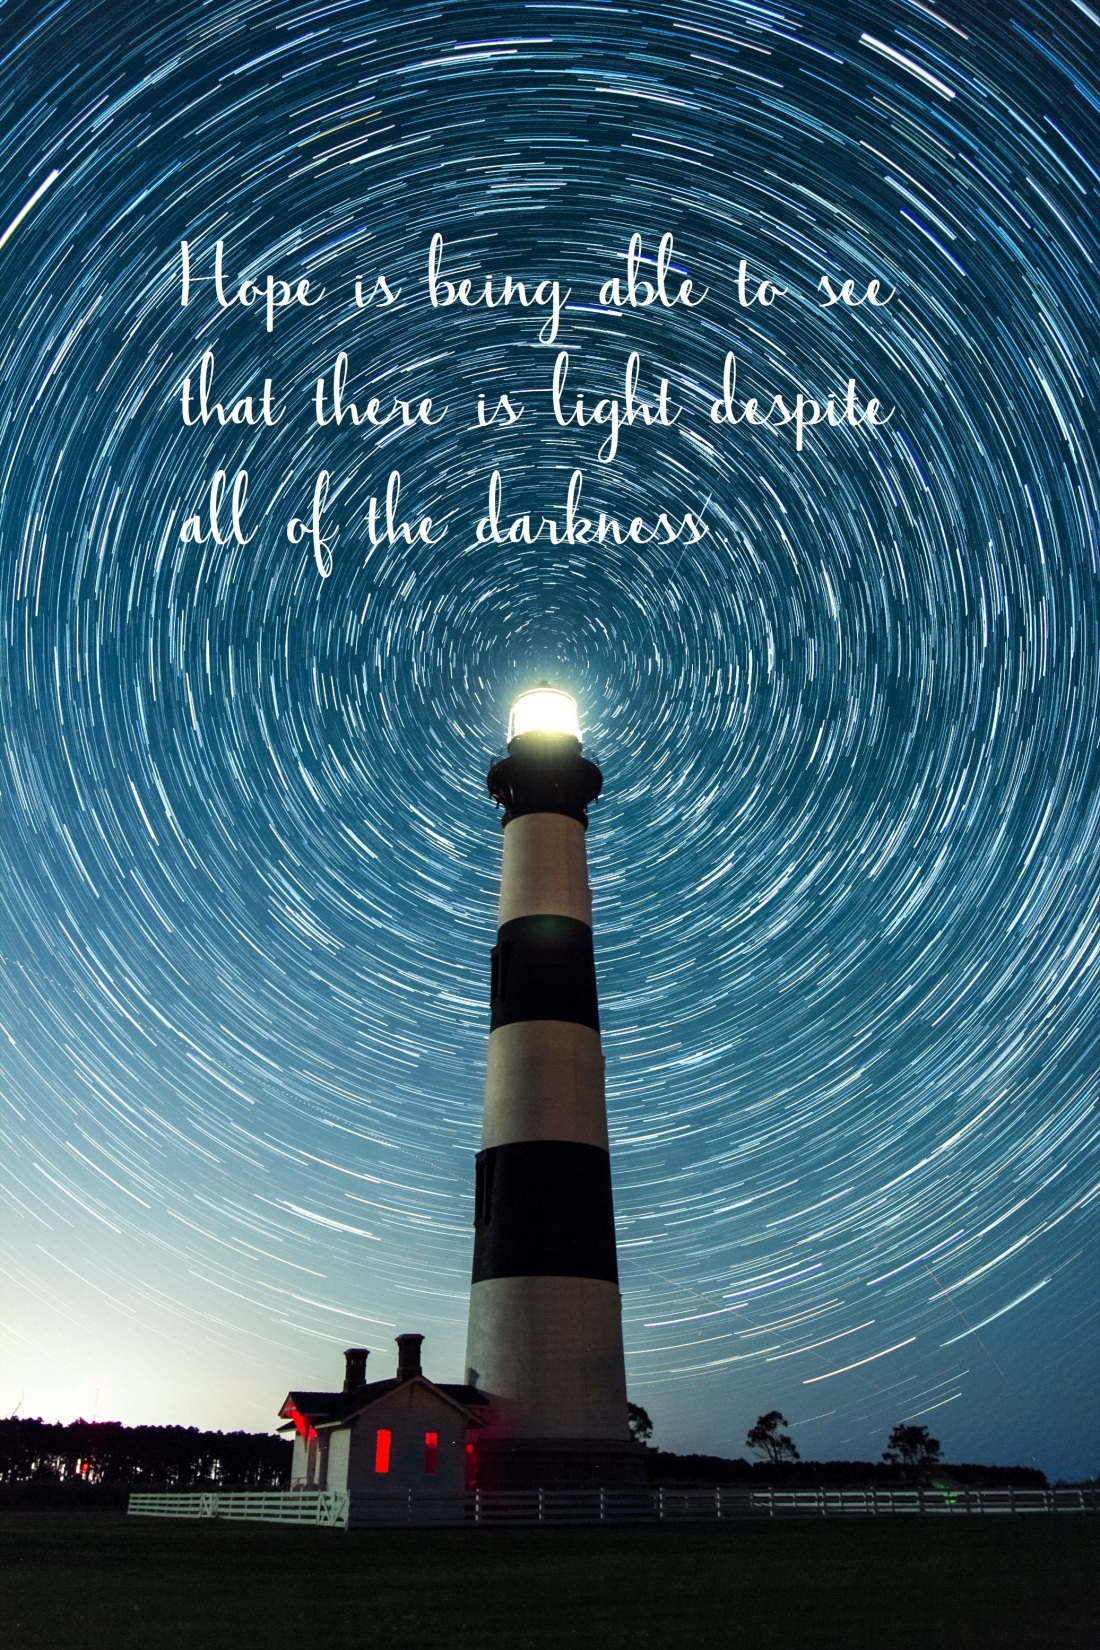 hope is being able to see that there is light despite all of the darkiness